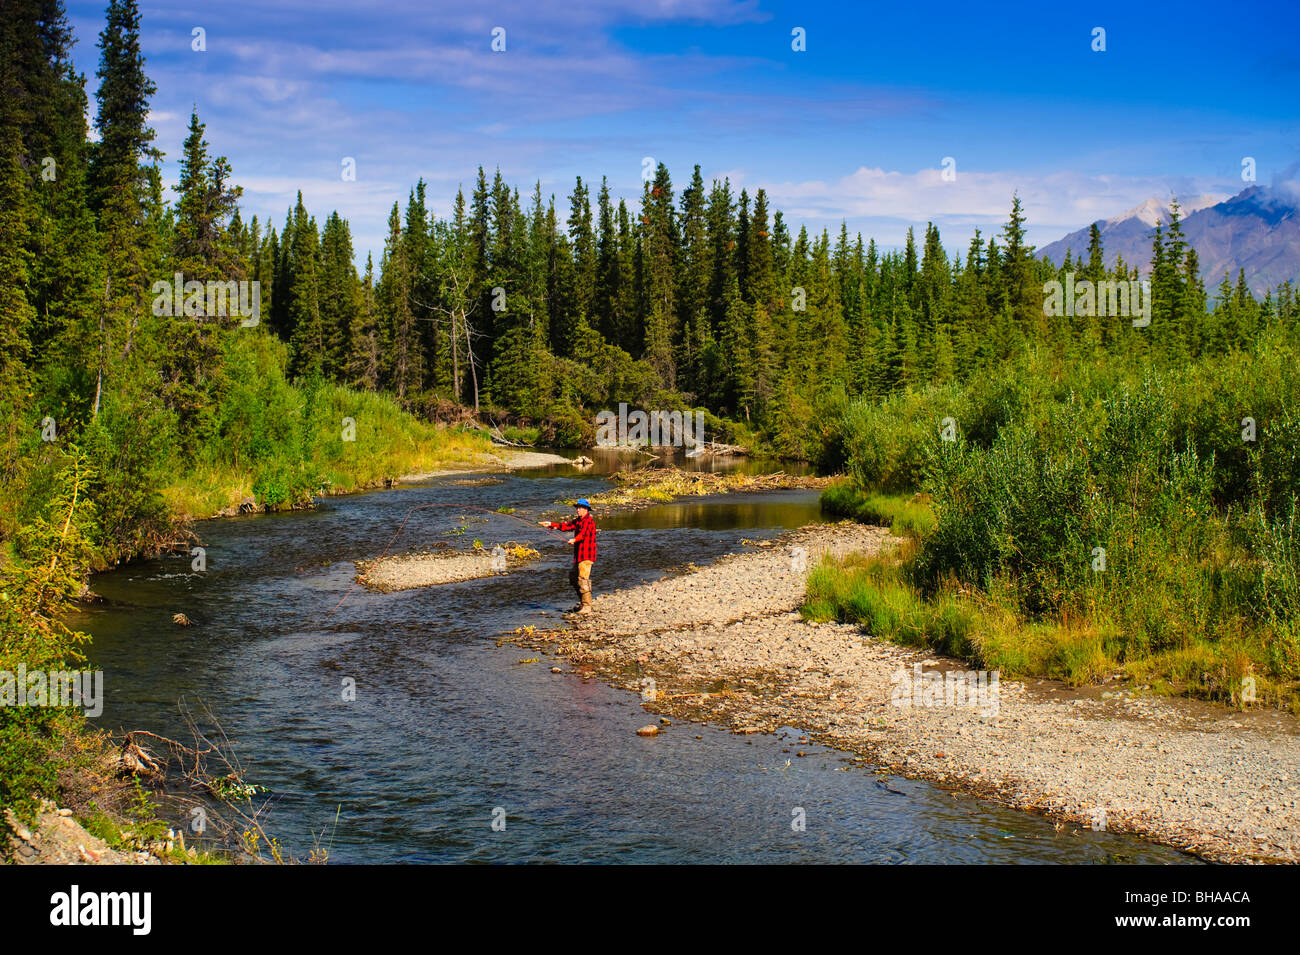 Man fly fishing for grayling, Jack Creek, Wrangell Saint Elias National Park, Southcentral Alaska, summer - Stock Image